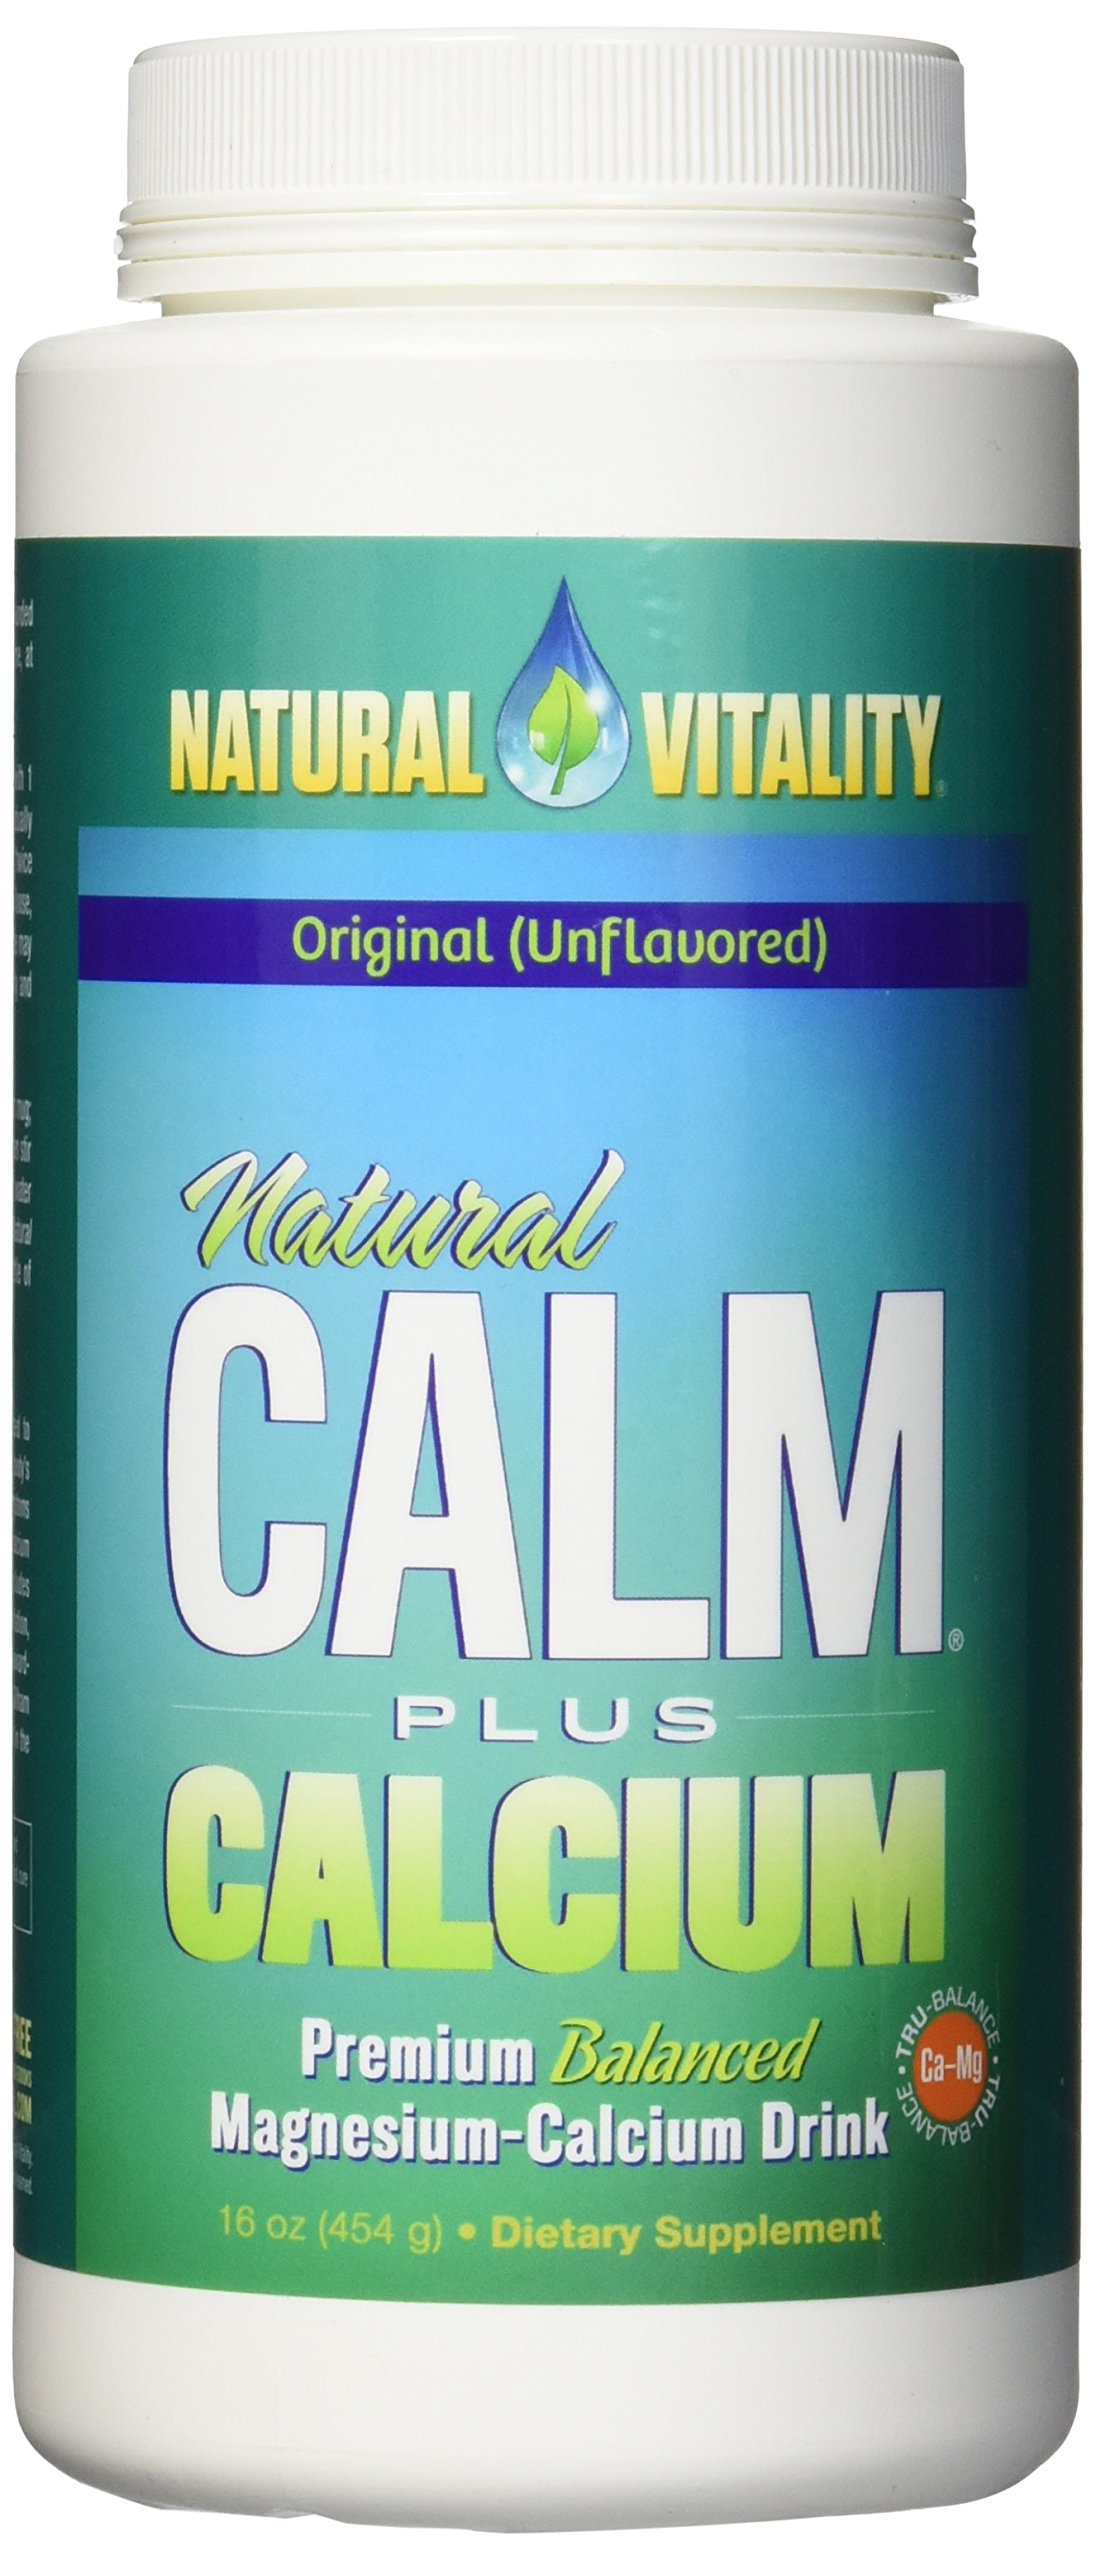 Natural Vitality Natural Calm Plus Drink - Calcium Diet Supplement, 16 Oz. Anti Stress Drink, Organic Drink. Stress Relief Drink